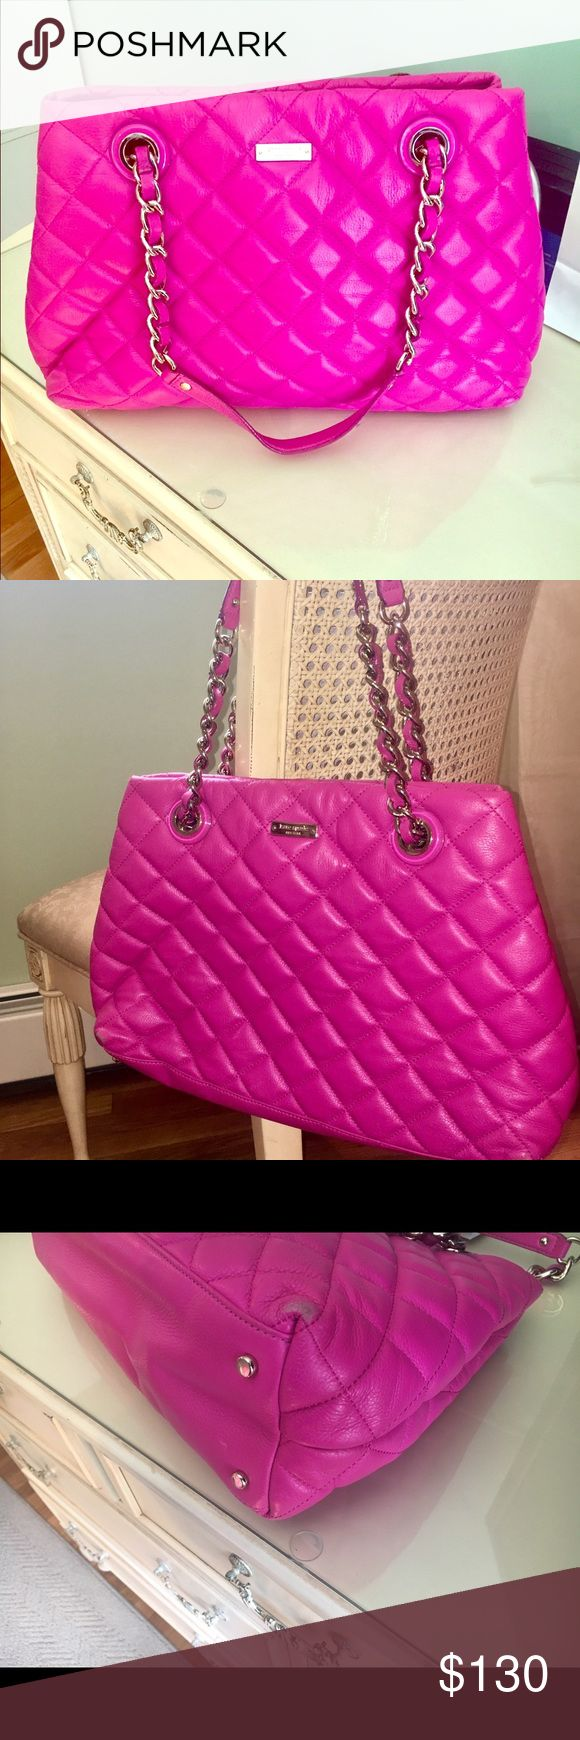 Kate Spade pink leather quilted bag Sale on Kate Spade leather quilted bag in pink with chain handles. Lightly used, but still in very good condition. There is a coffee stain on inner fabric, however, I never tried to remove this stain and you may be able to wash it out fairly easily. Bag is great for work or school. kate spade Bags Totes